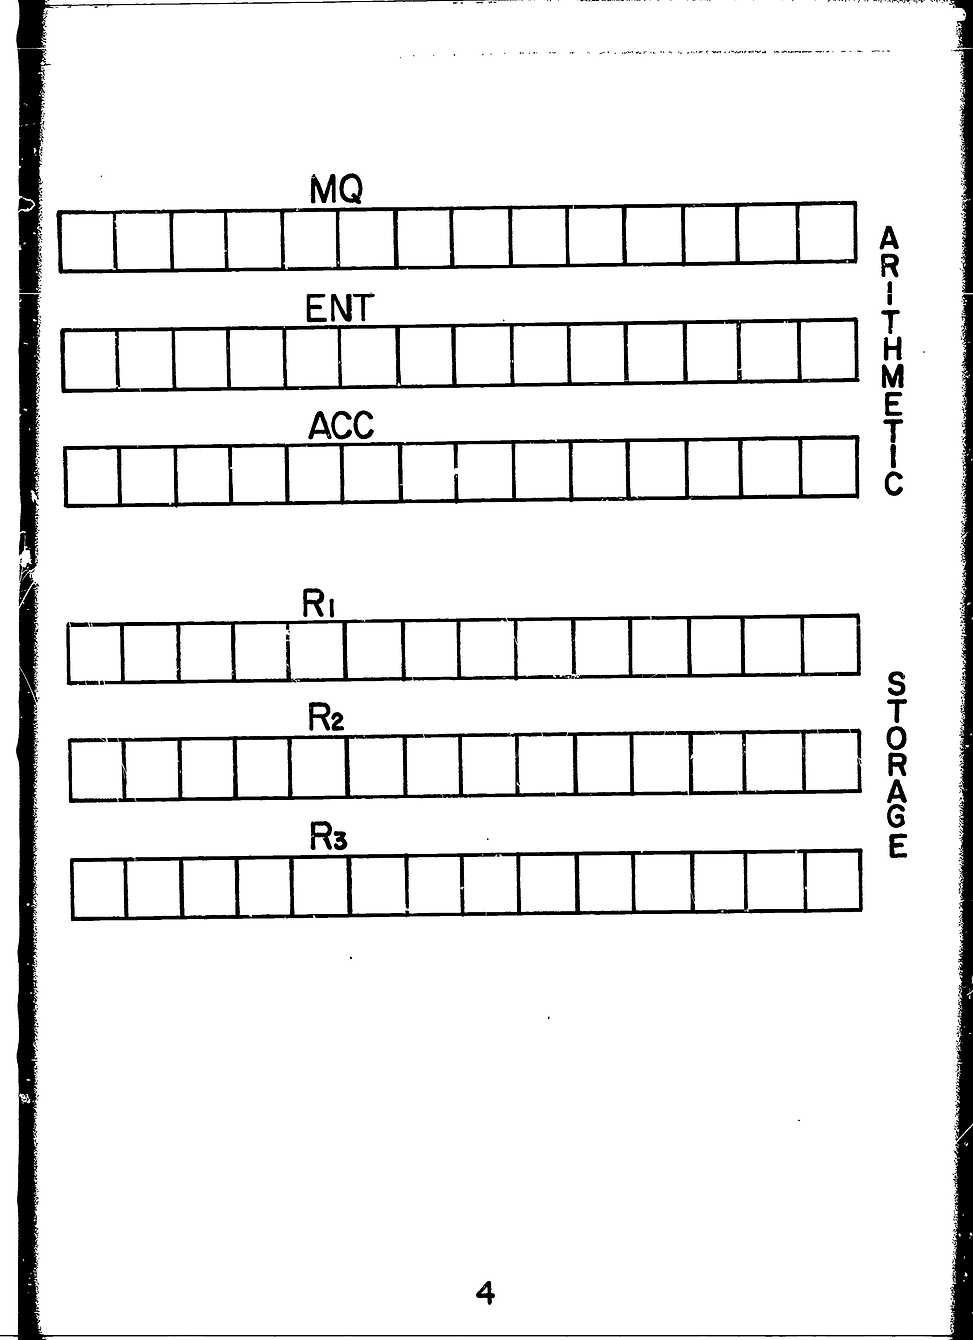 WYLE Instruction_Page_092_Image_0001.tif